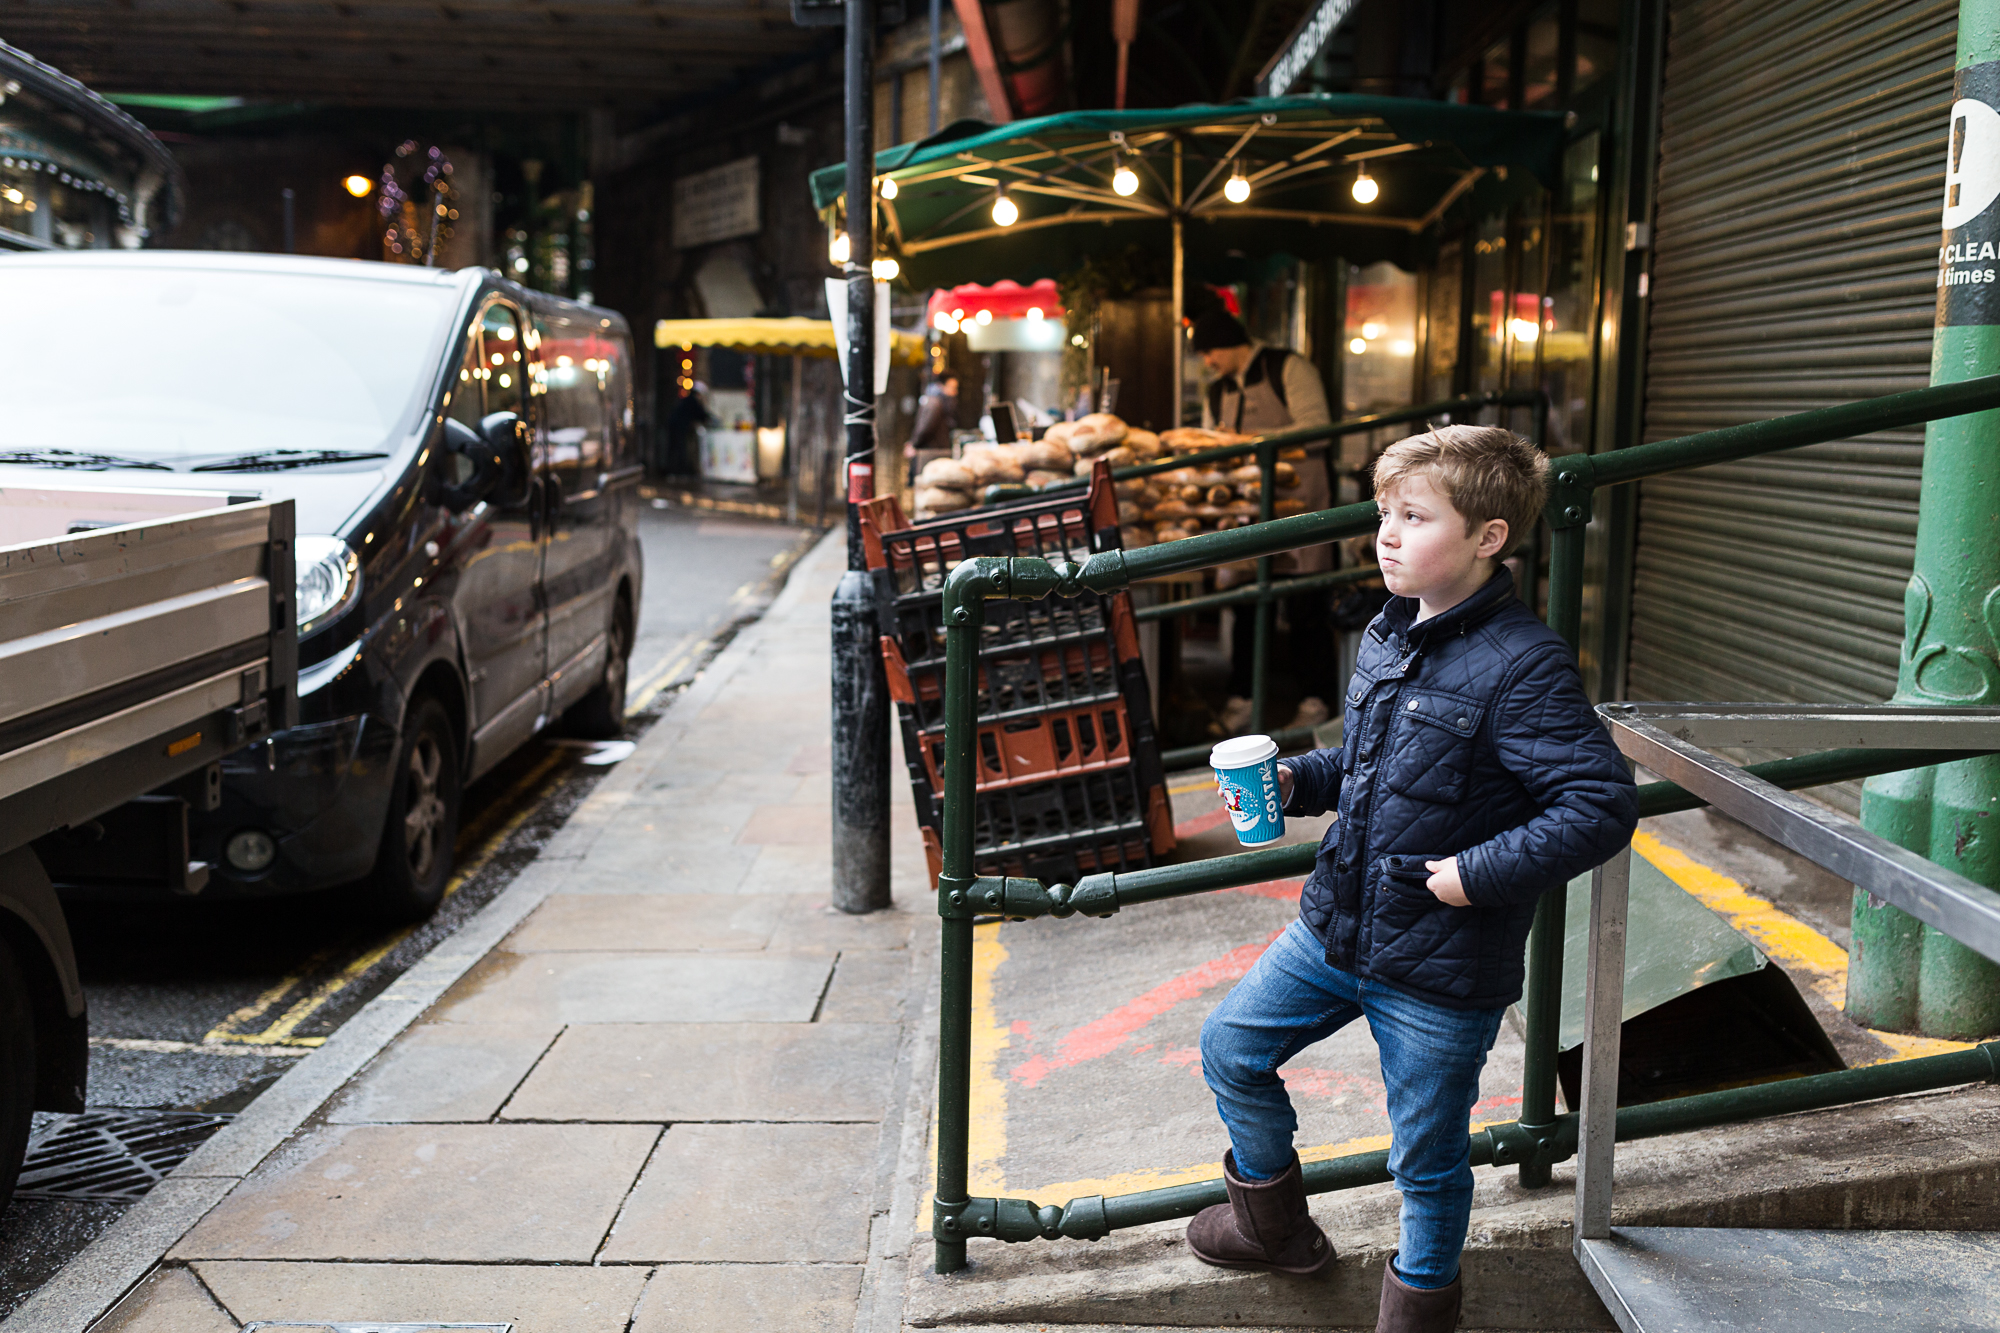 Bexley family photographer London Christmas activities review